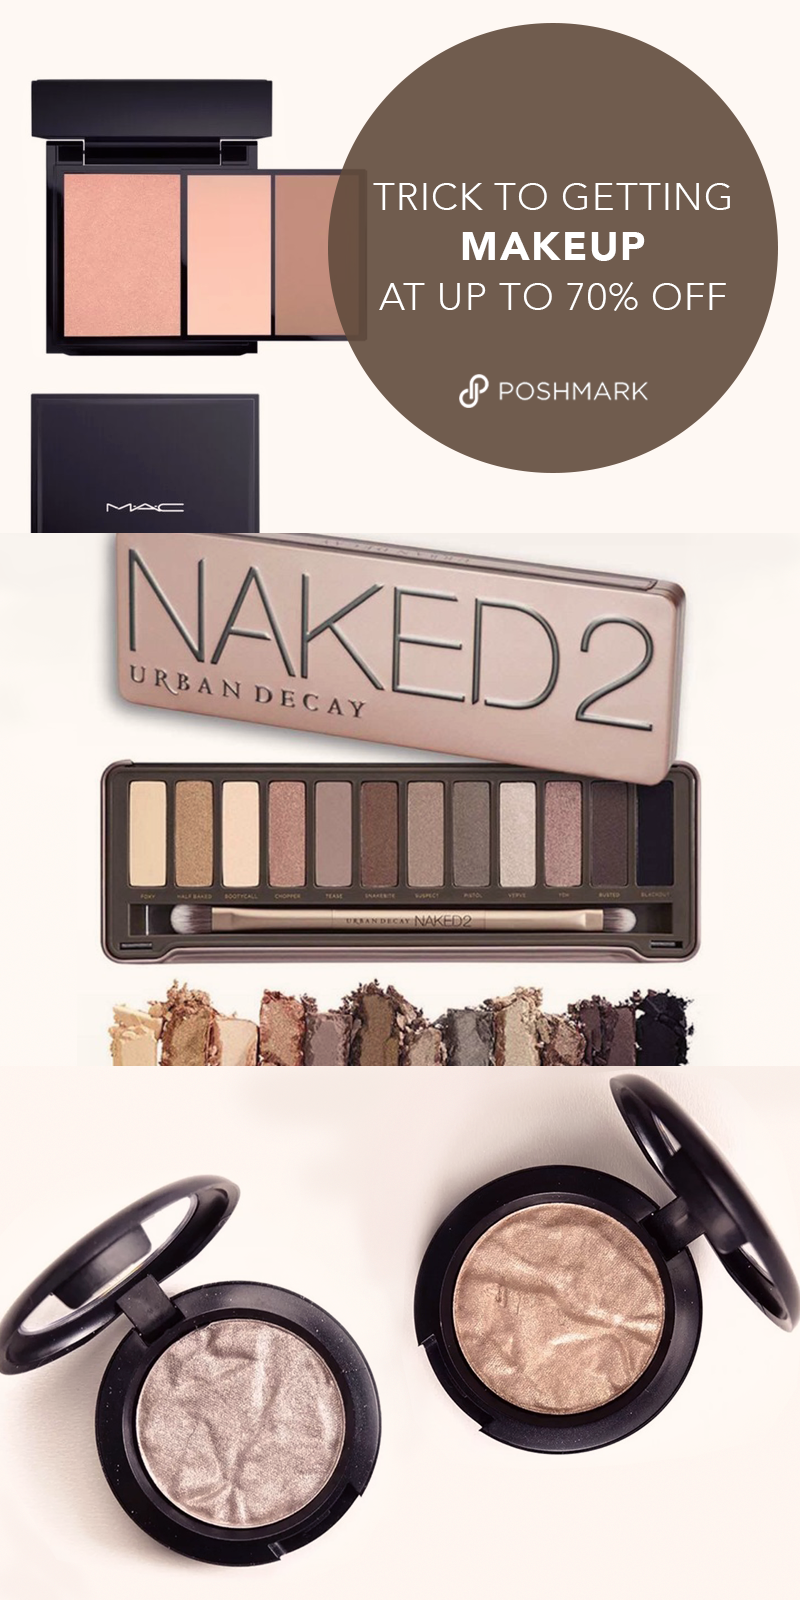 Why pay full price for makeup when you can get it all for